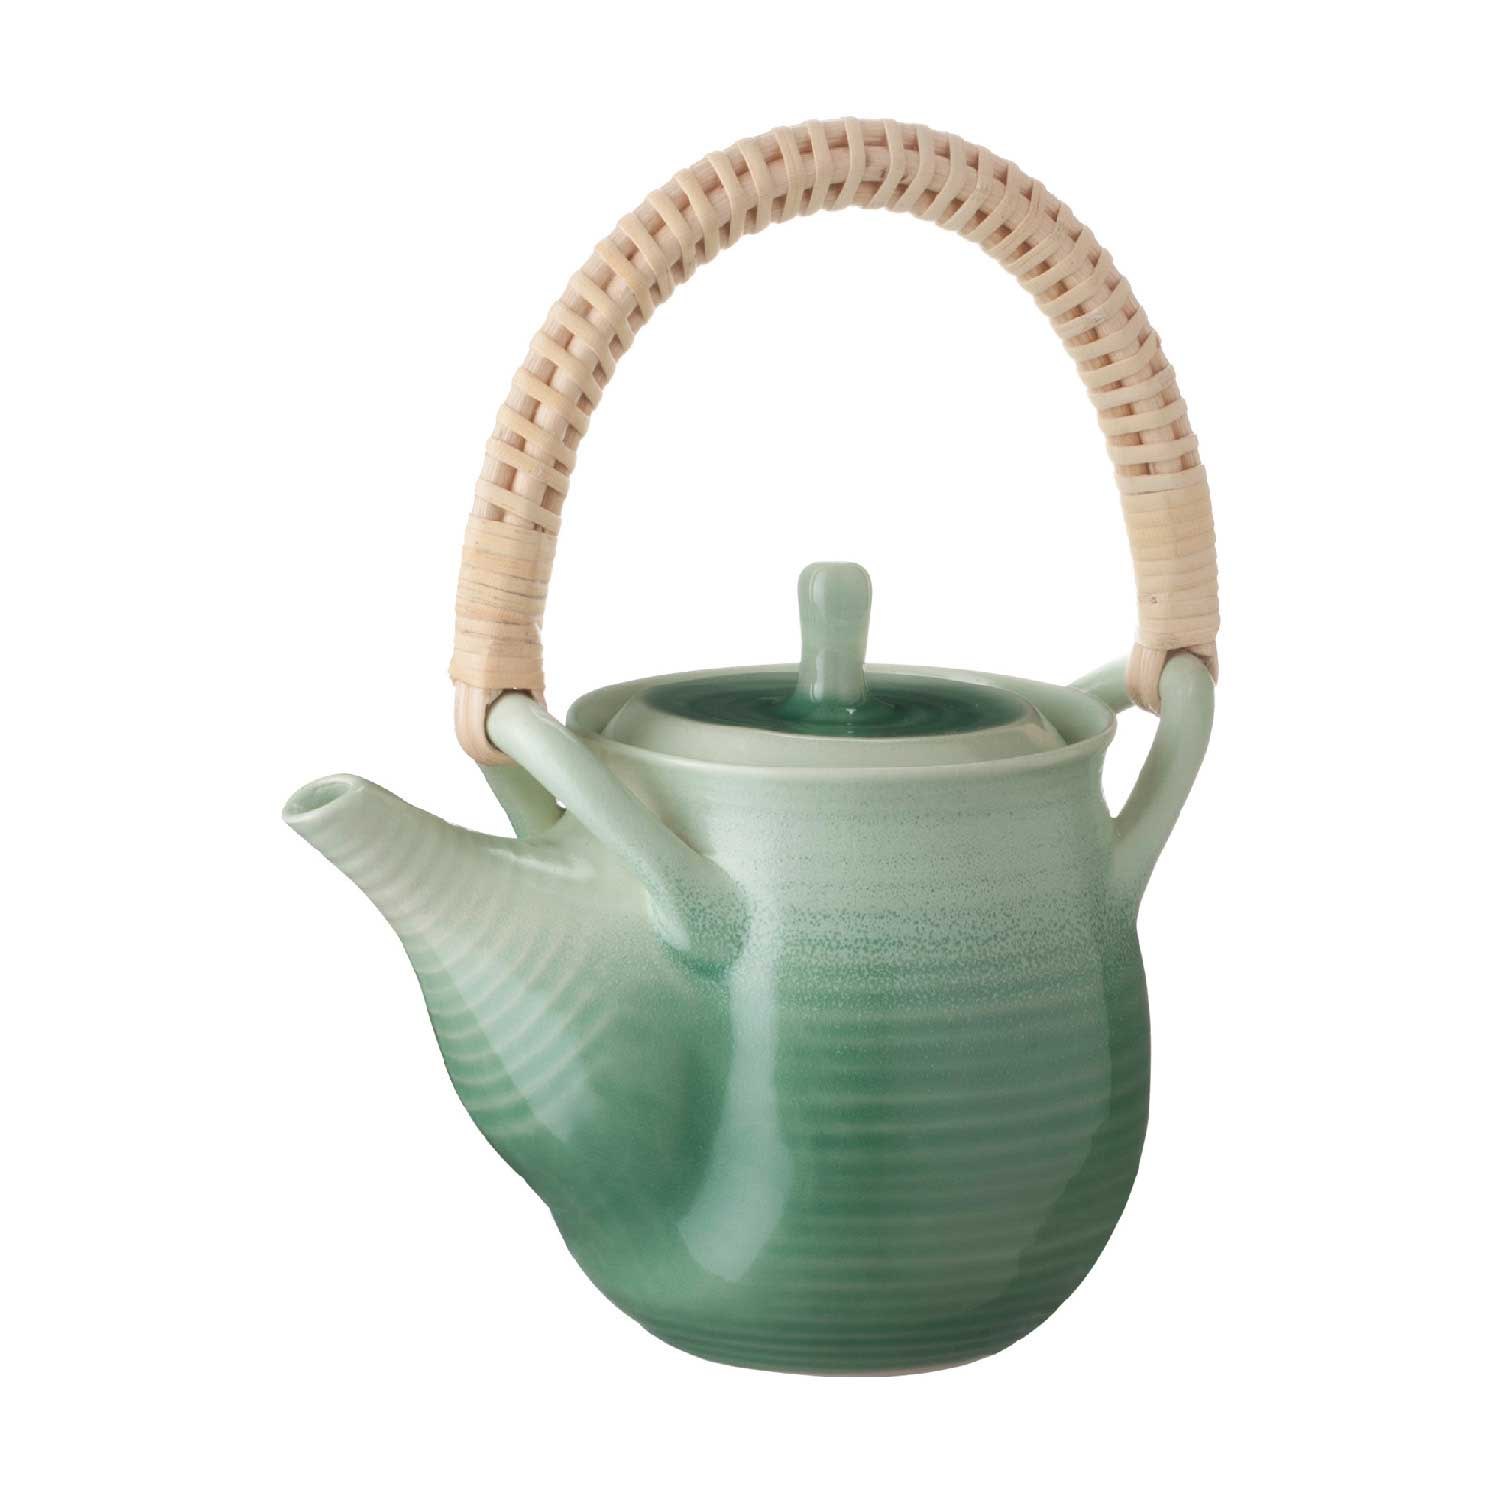 JAPANESE TEA POT 5